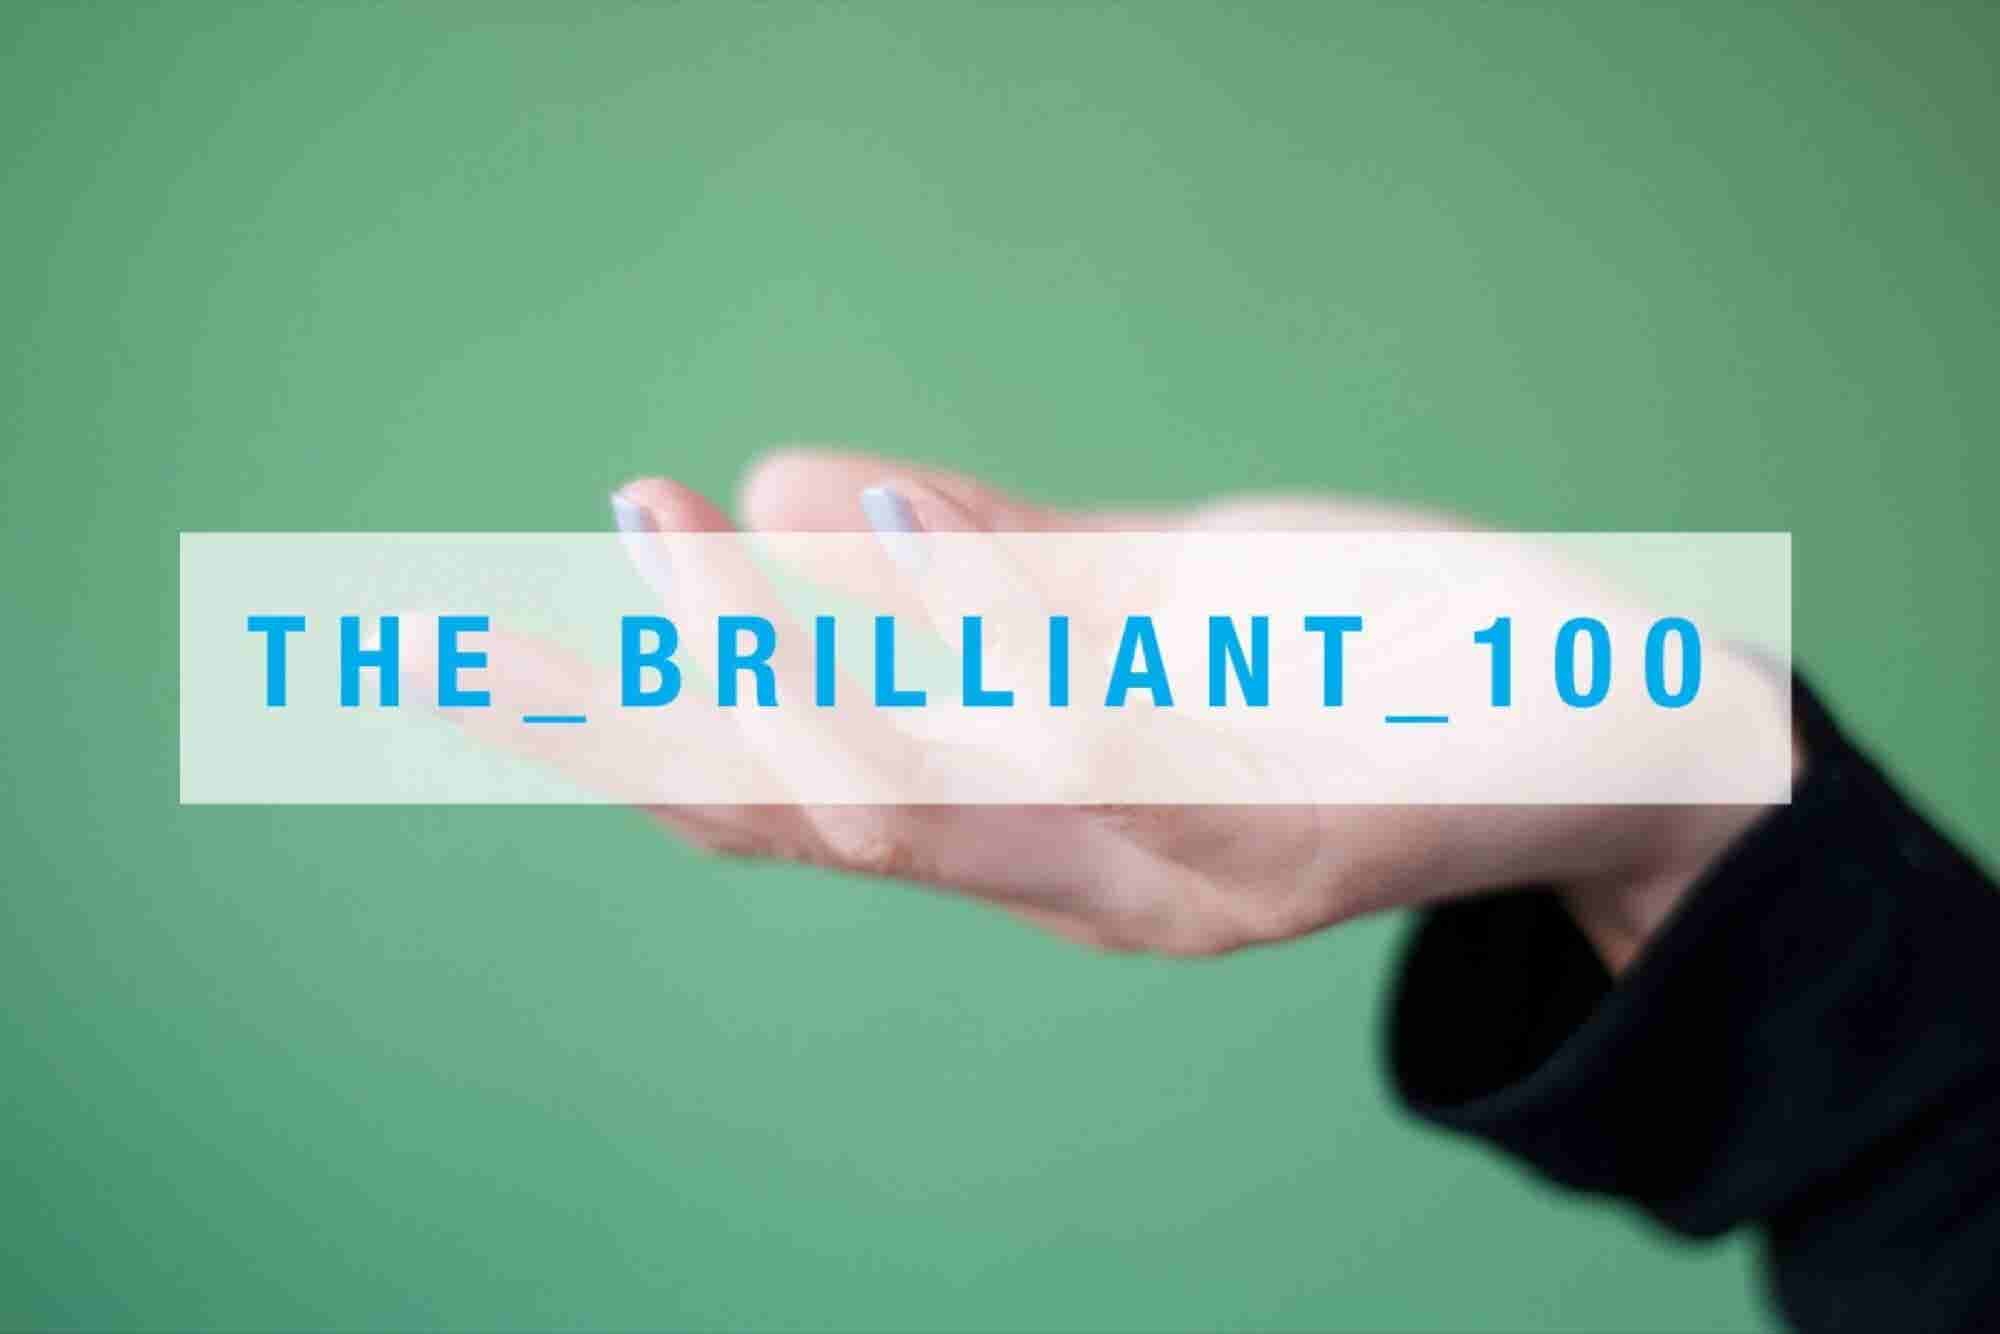 10 On-Demand Services to Watch 2016 - Entrepreneur's Brilliant 100